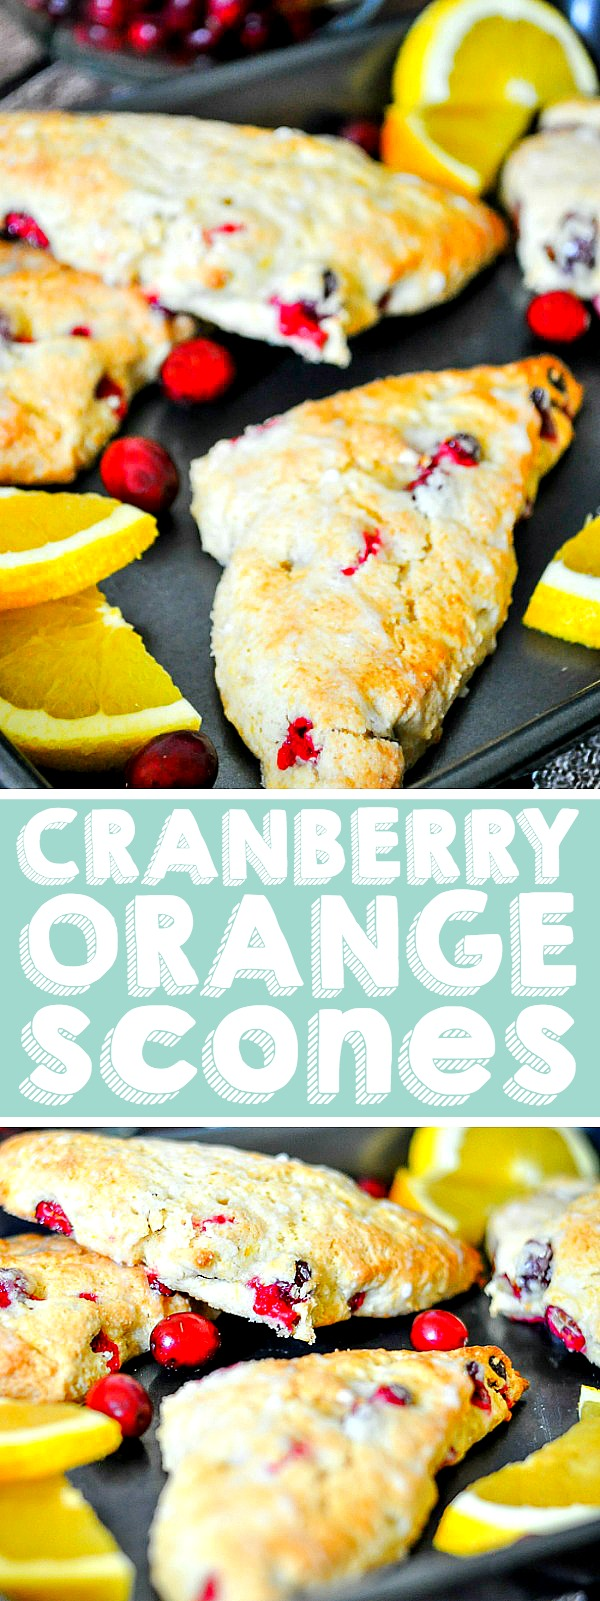 Delicious Orange Cranberry Scones make a delicious Christmas morning treat. Or Thanksgiving. Or New Years! Really any day of the year you will love this easy scone recipe! Spruce it up for the holidays with a little egg nog for an even richer, creamier taste!| THE LOVE NERDS #sconerecipe #christmasbreakfast #holidayscone #cranberryrecipe